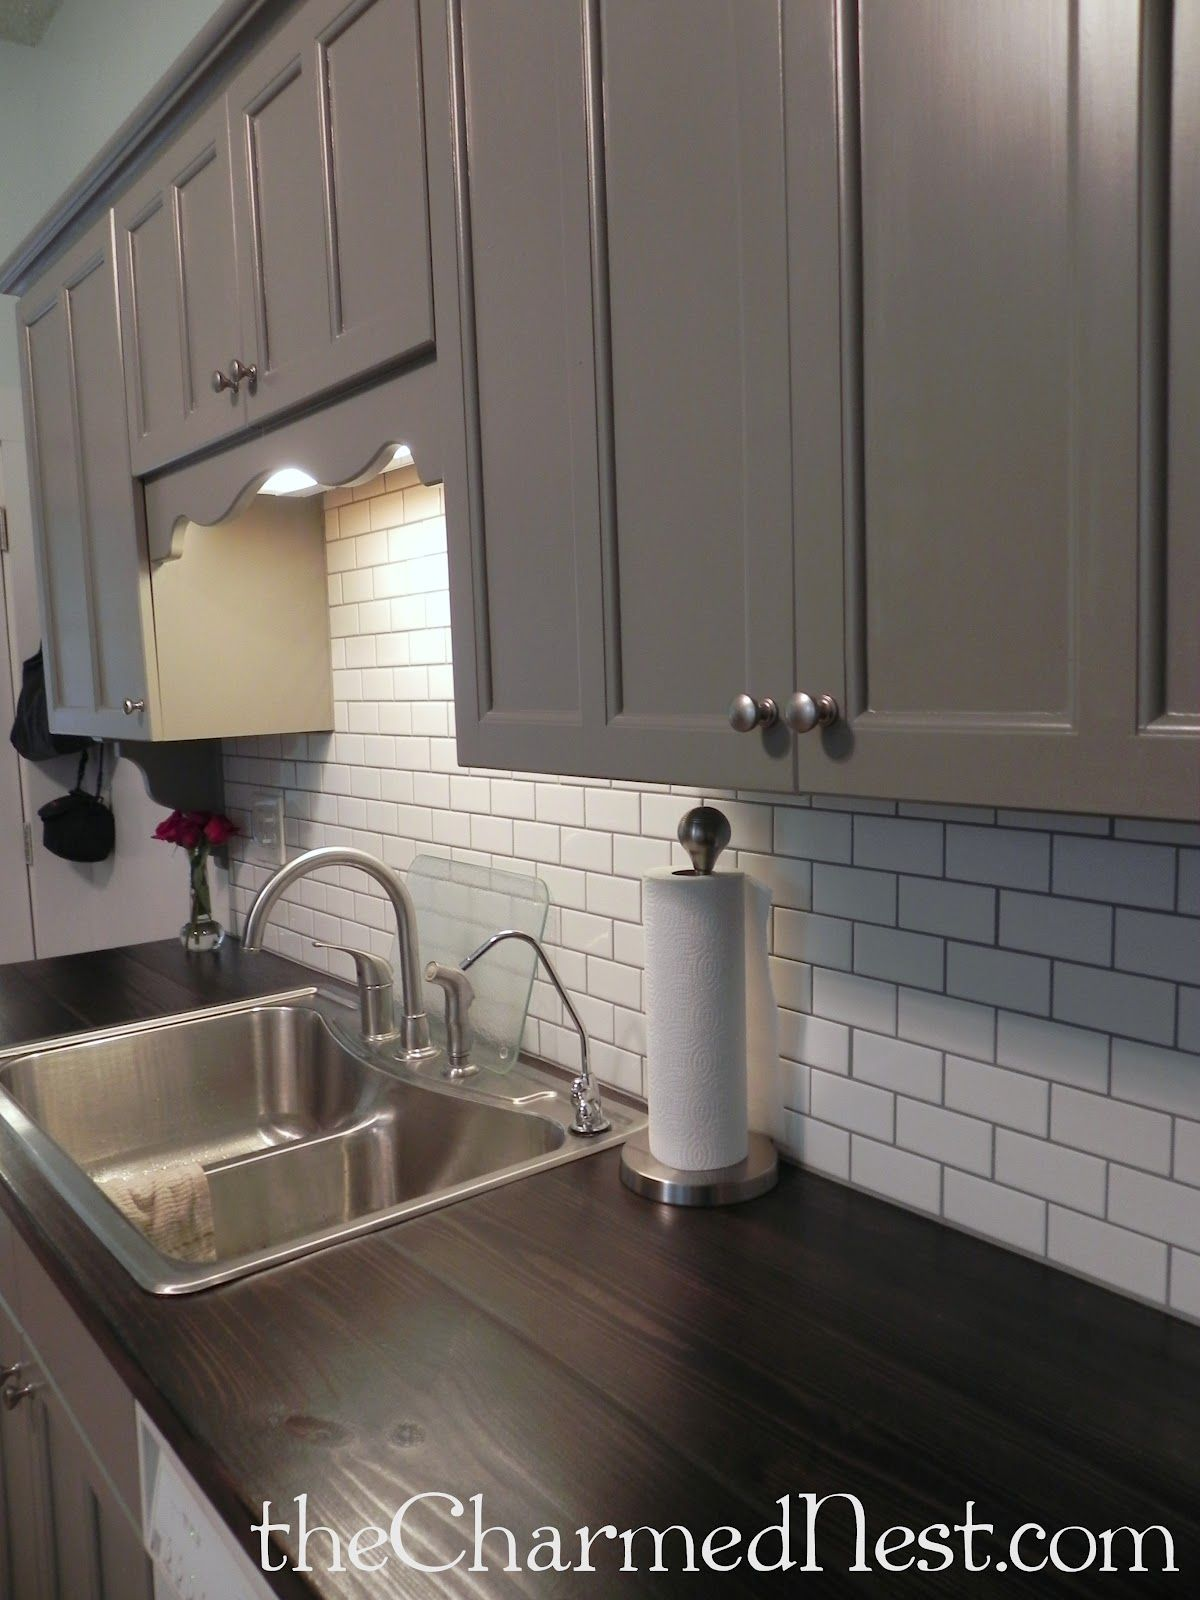 Pin by diane burd on vienna house ideas pinterest grey grout the charmed nest update kitchen this is almost exactly what i have in mind grey cabinets stainless hardware white subway tile back splash dailygadgetfo Gallery